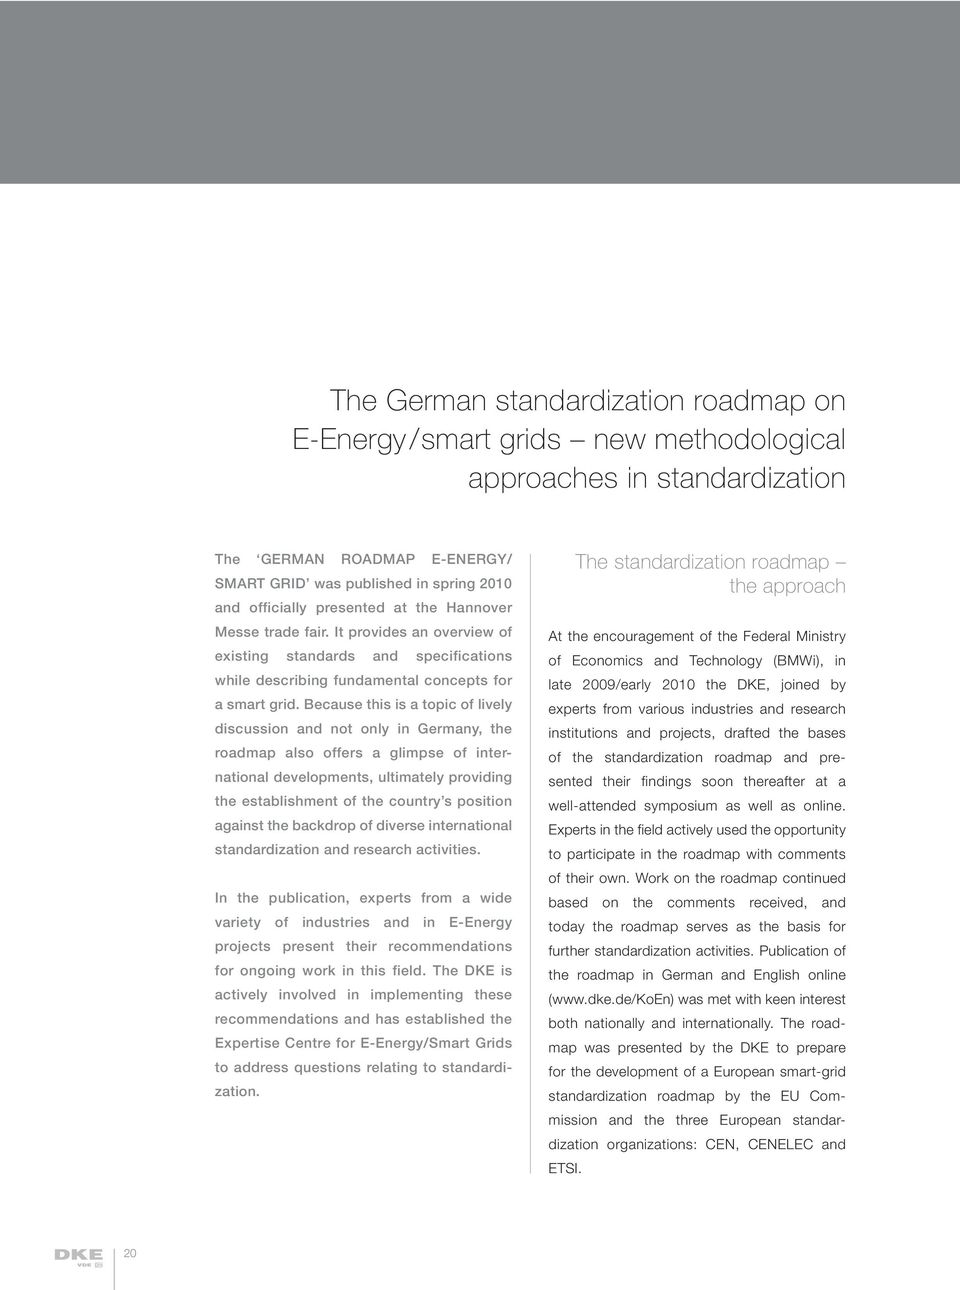 Because this is a topic of lively discussion and not only in Germany, the roadmap also offers a glimpse of international developments, ultimately providing the establishment of the country s position